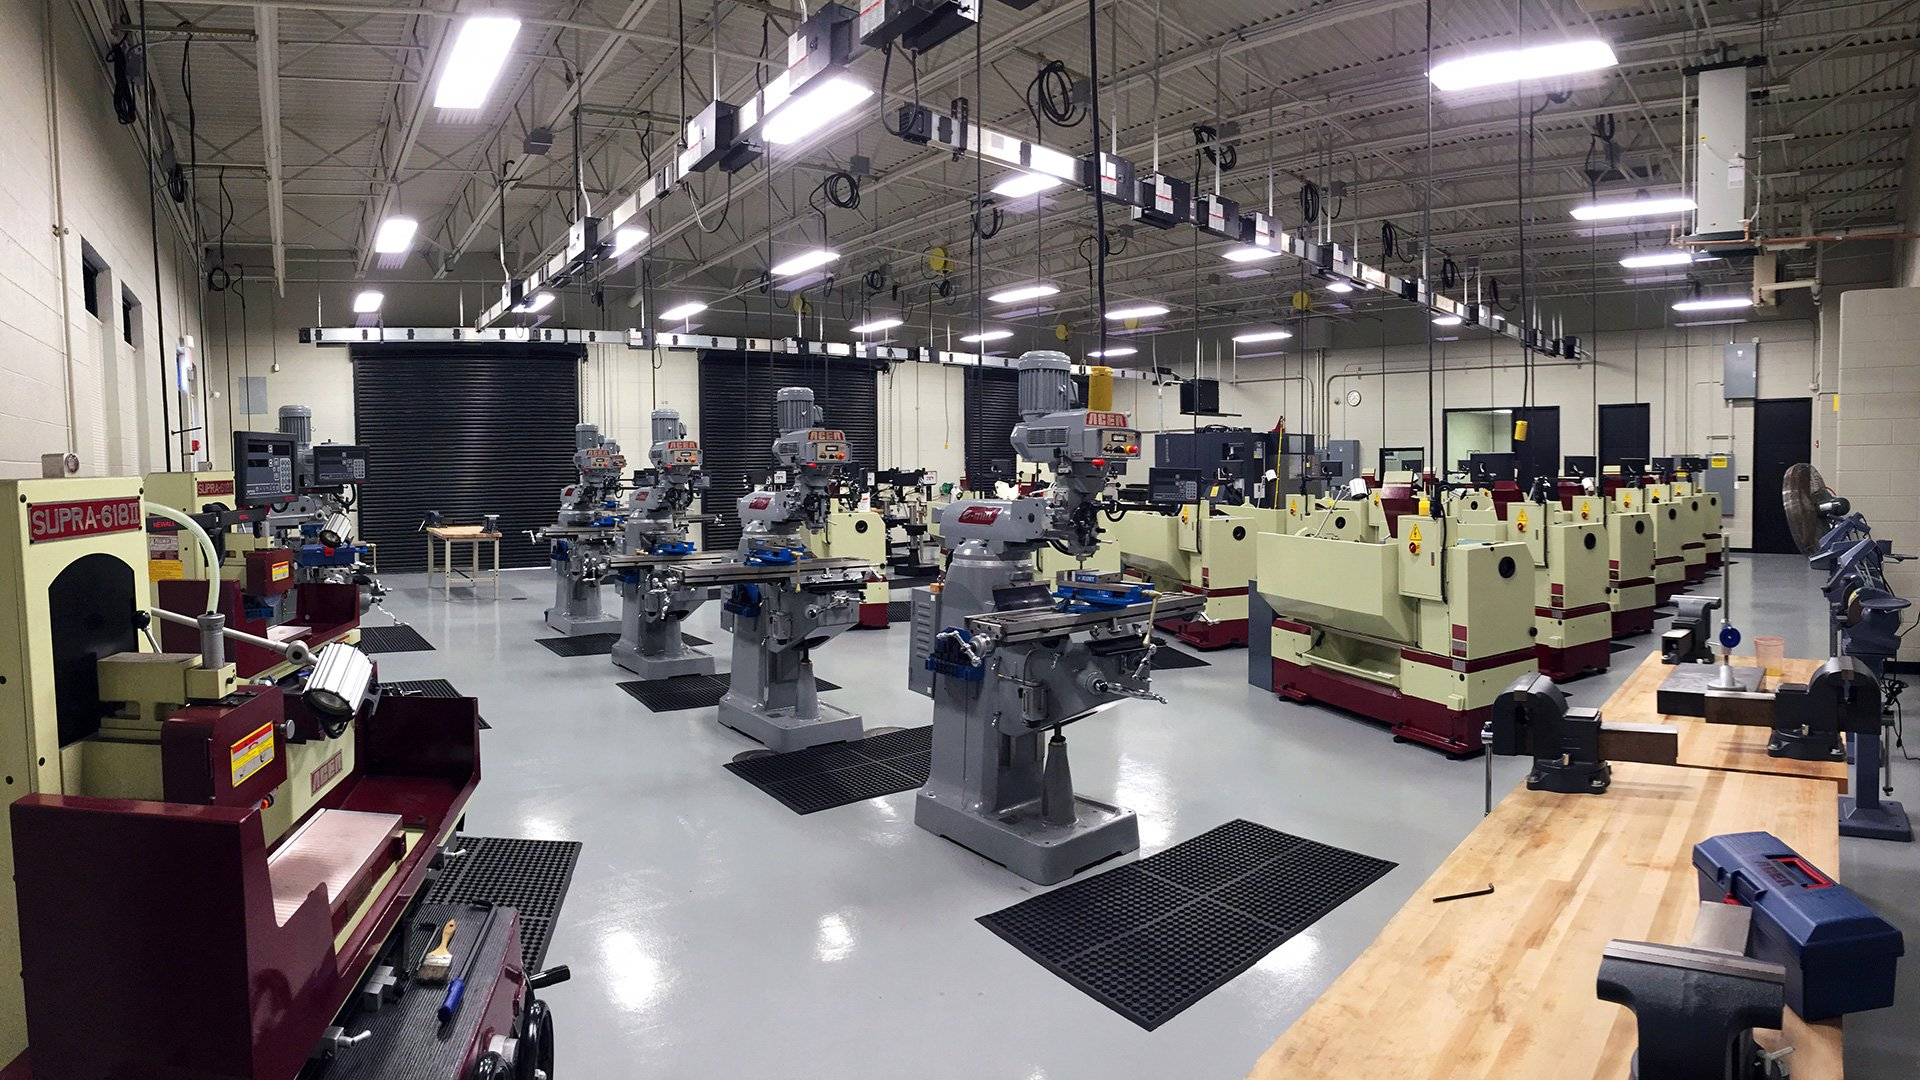 R.D. Anderson Applied Technology Center, Spartanburg School Districts 4, 5, & 6